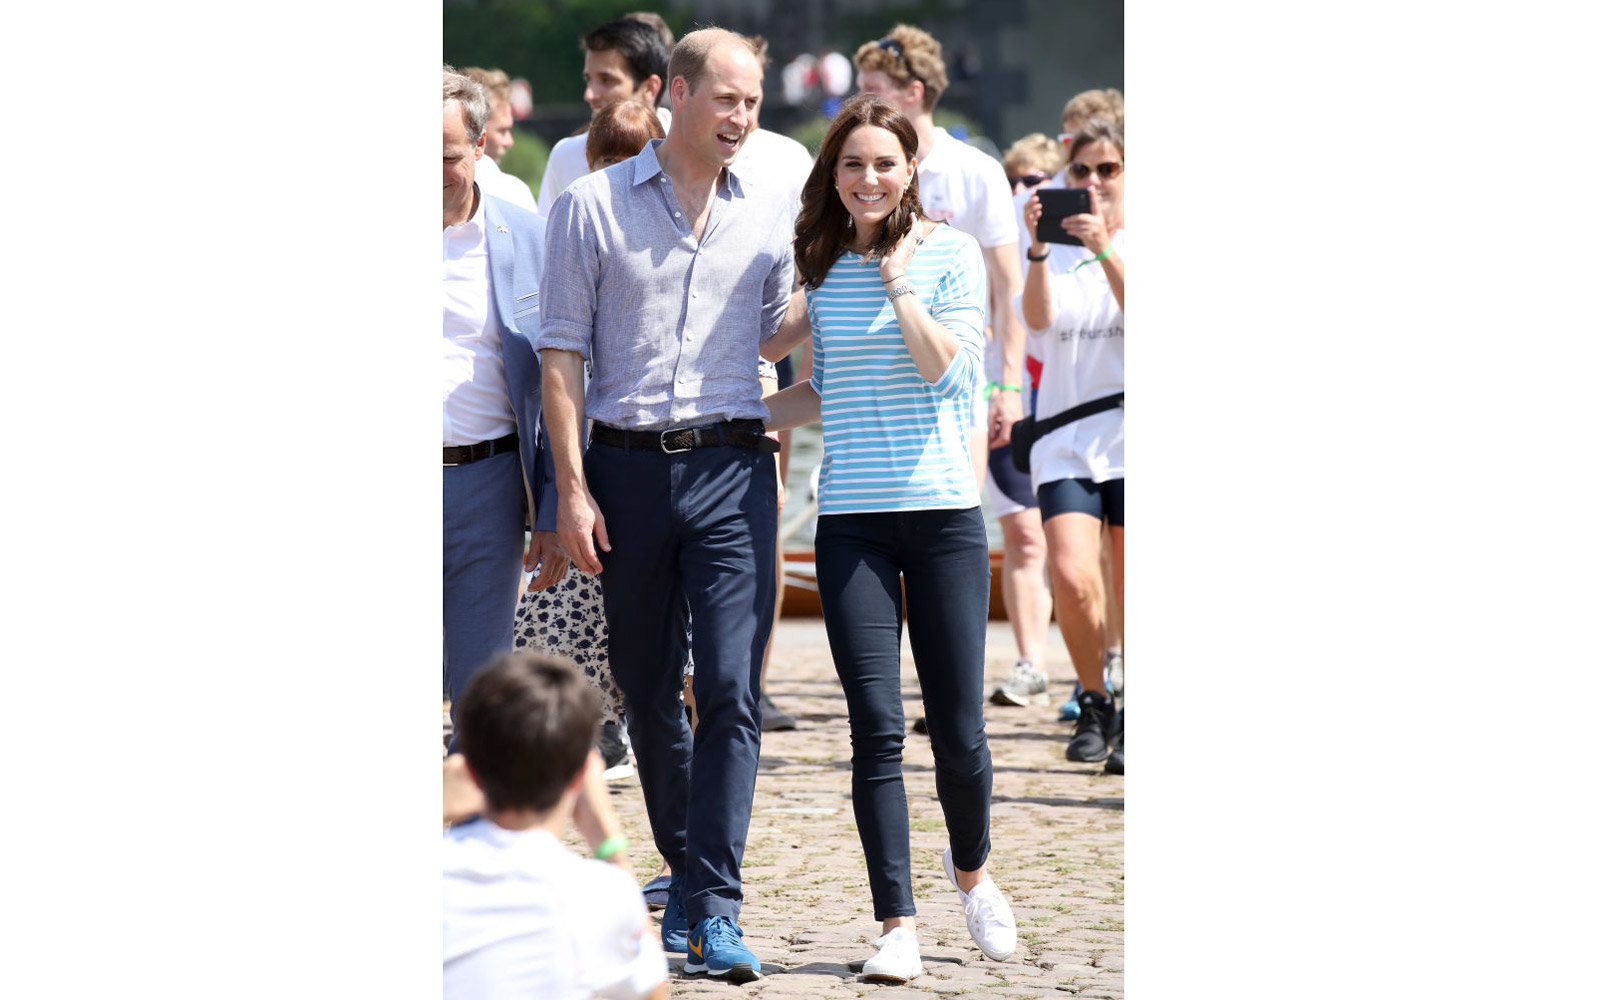 HEIDELBERG, GERMANY - JULY 20:  Prince William, Duke of Cambridge and Catherine, Duchess of Cambridge after participating in a rowing race between the twinned town of Cambridge and Heidelberg on day 2 of their official visit to Germany on July 20, 2017 in